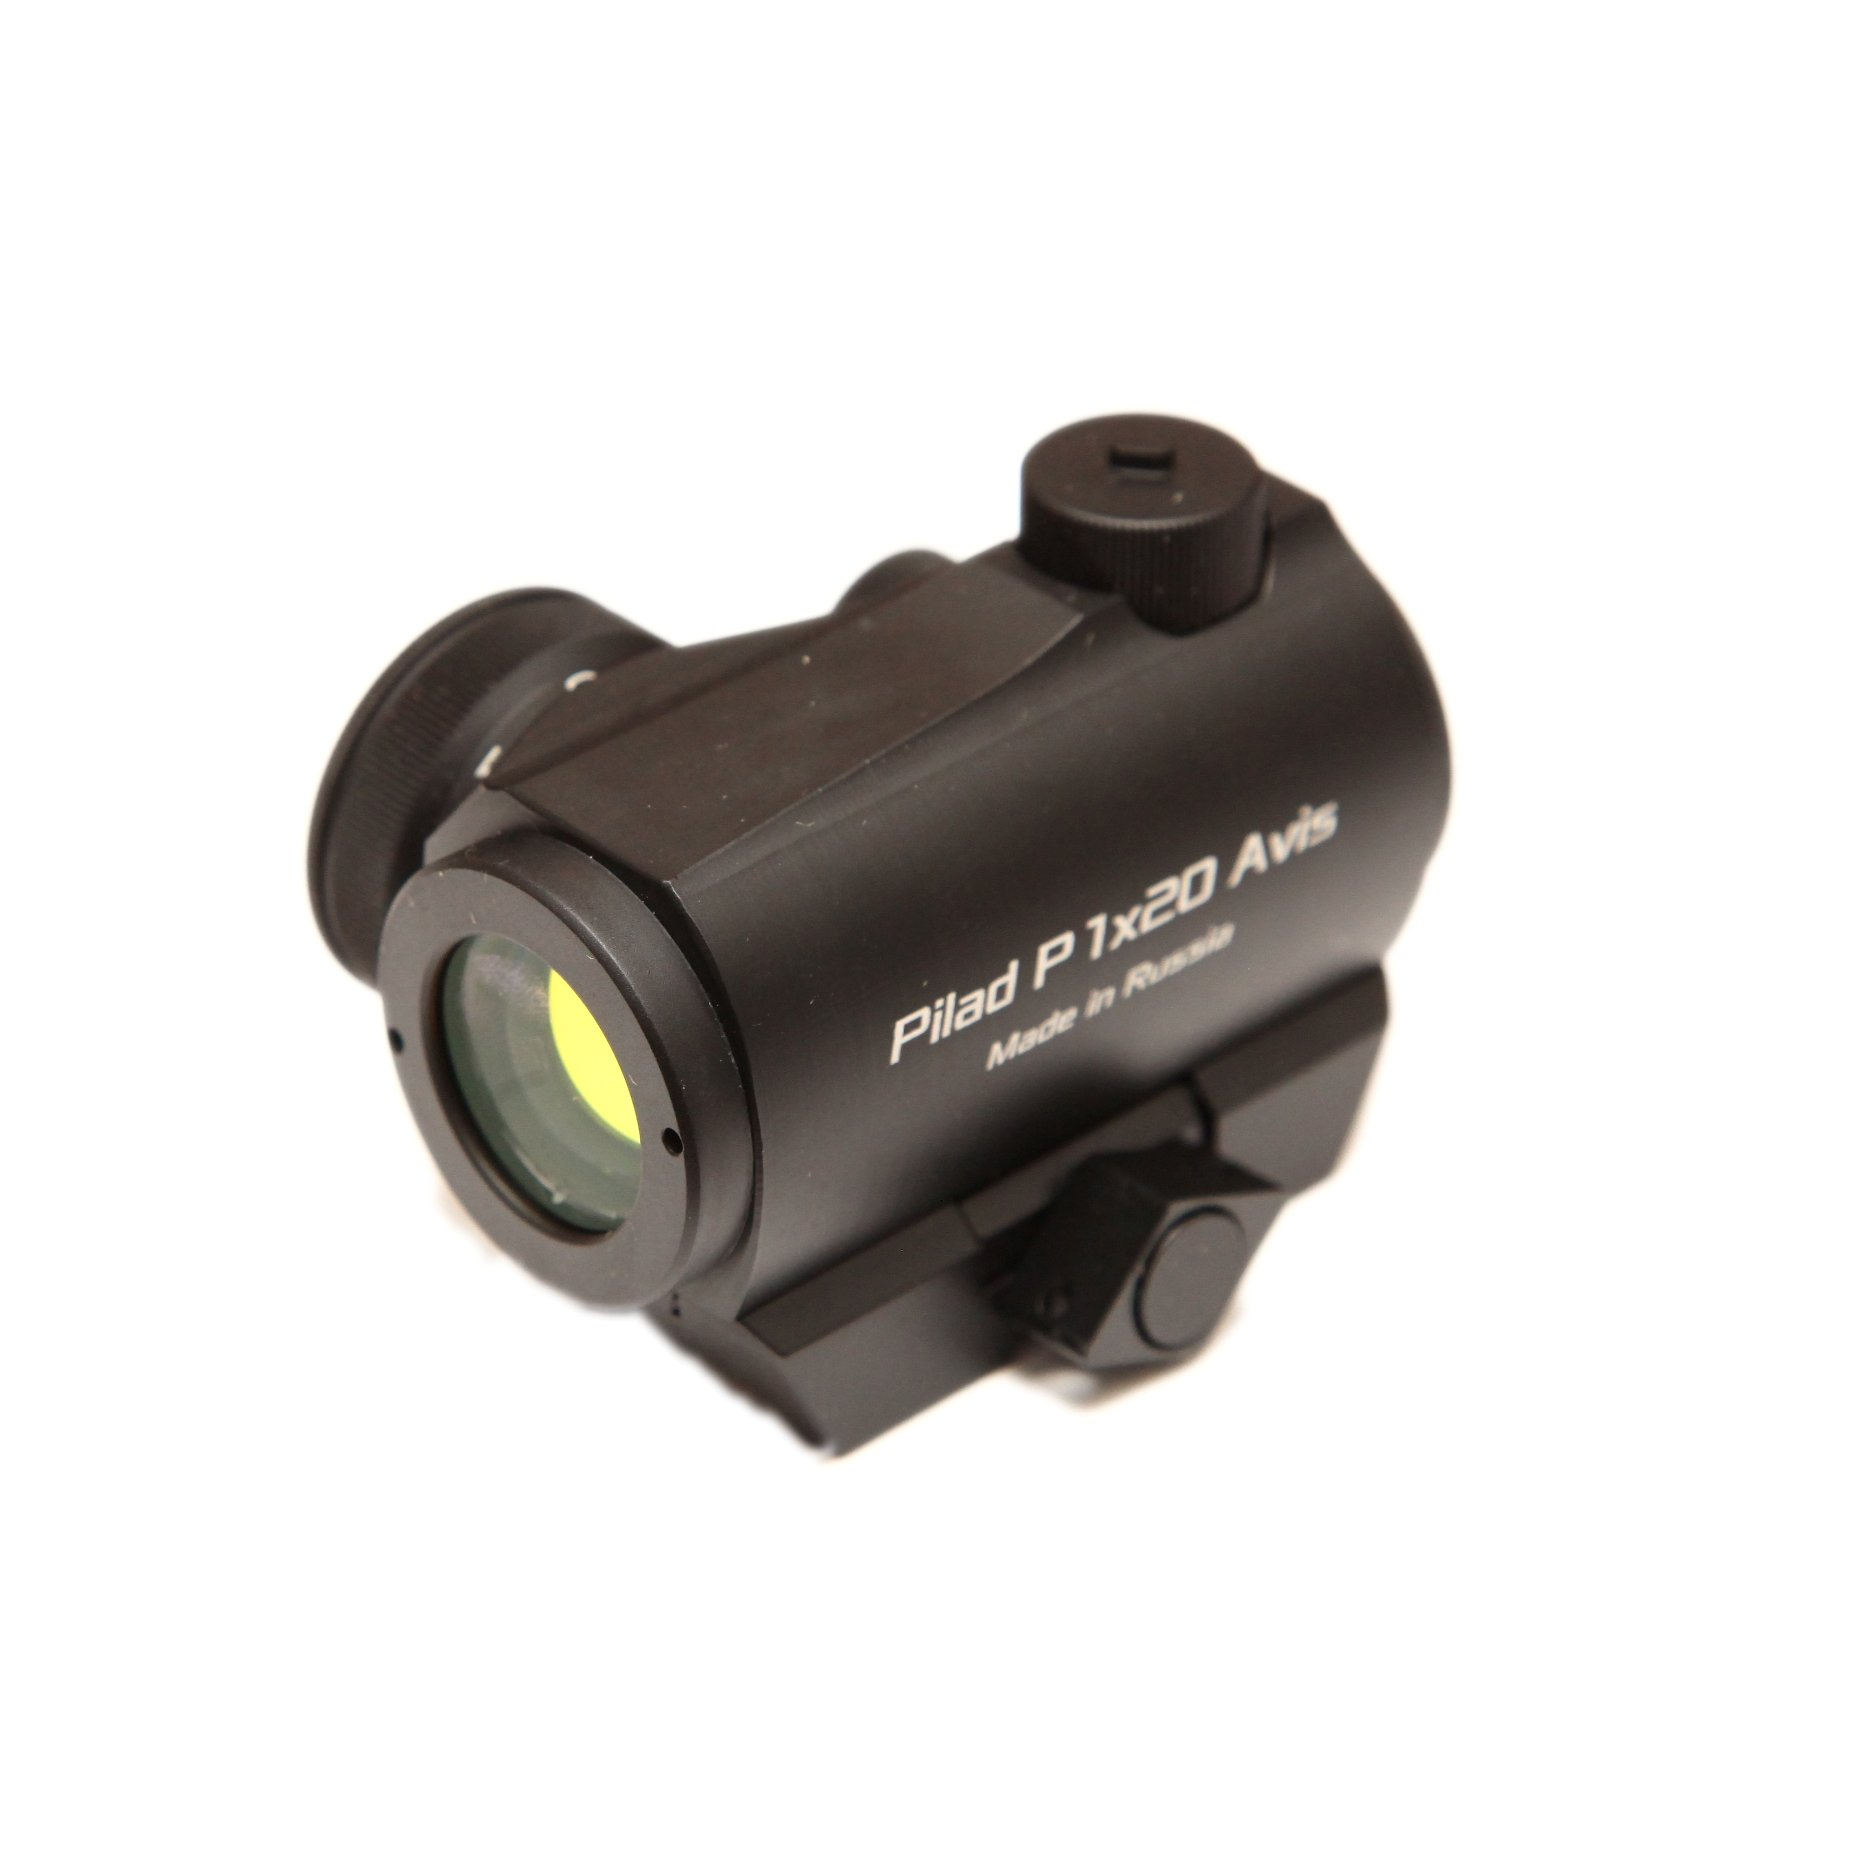 Pilad P1x20 Avis red dot reflex sight